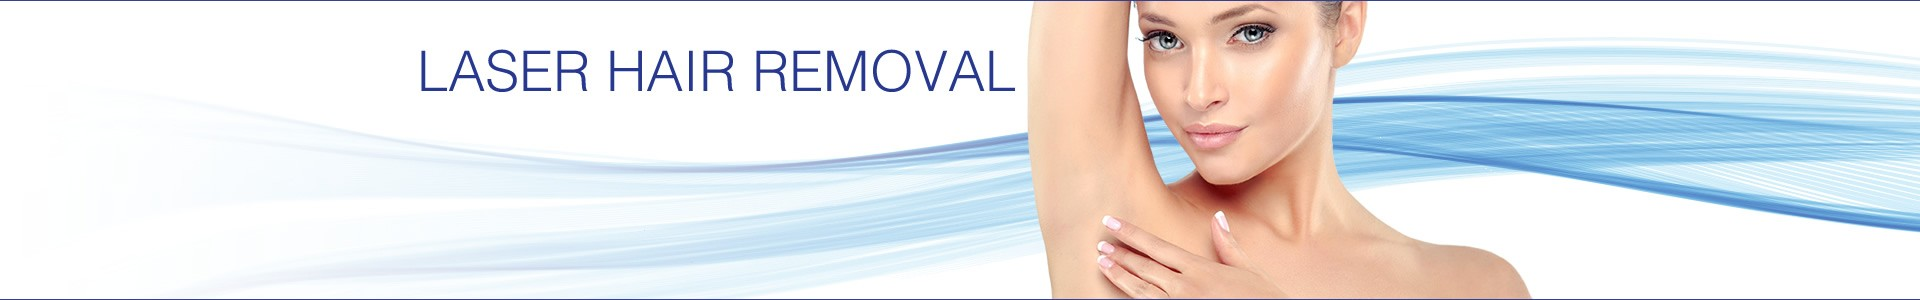 Laser Hair Removal - Smooth Skin Health Centre Hamilton - Advanced Technology